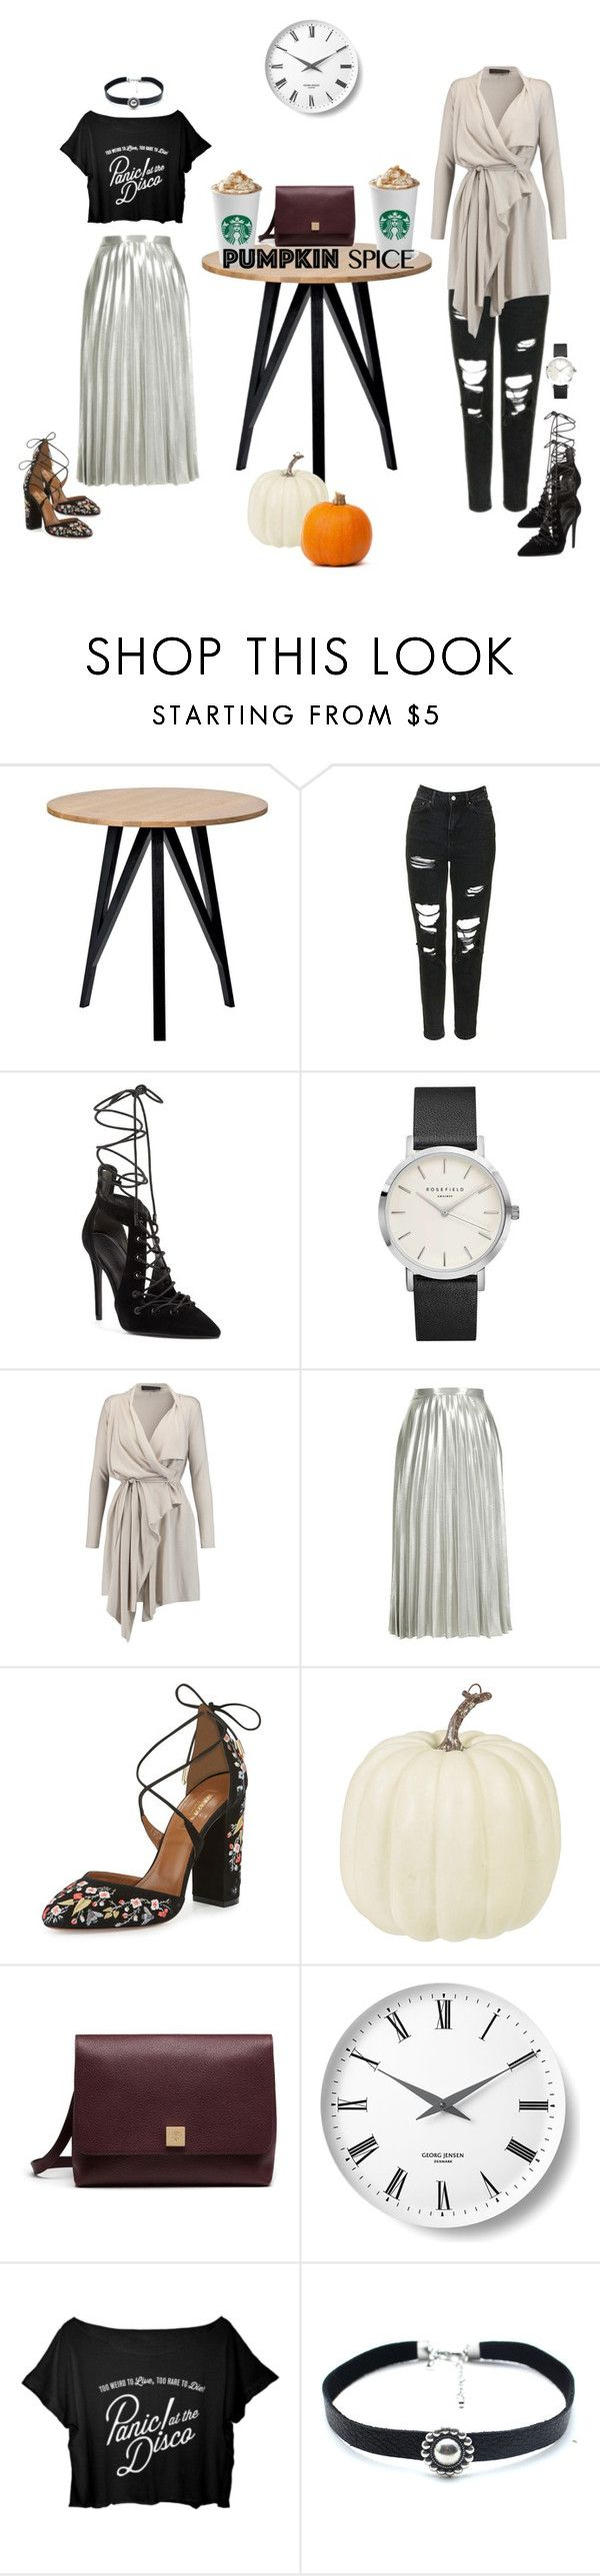 """Pumpkin Time..."" by elenamp07 ❤ liked on Polyvore featuring Topshop, Kendall + Kylie, Maria Grachvogel, Aquazzura, Mulberry, Georg Jensen, Child Of Wild, lovely, nicestyle and pps"